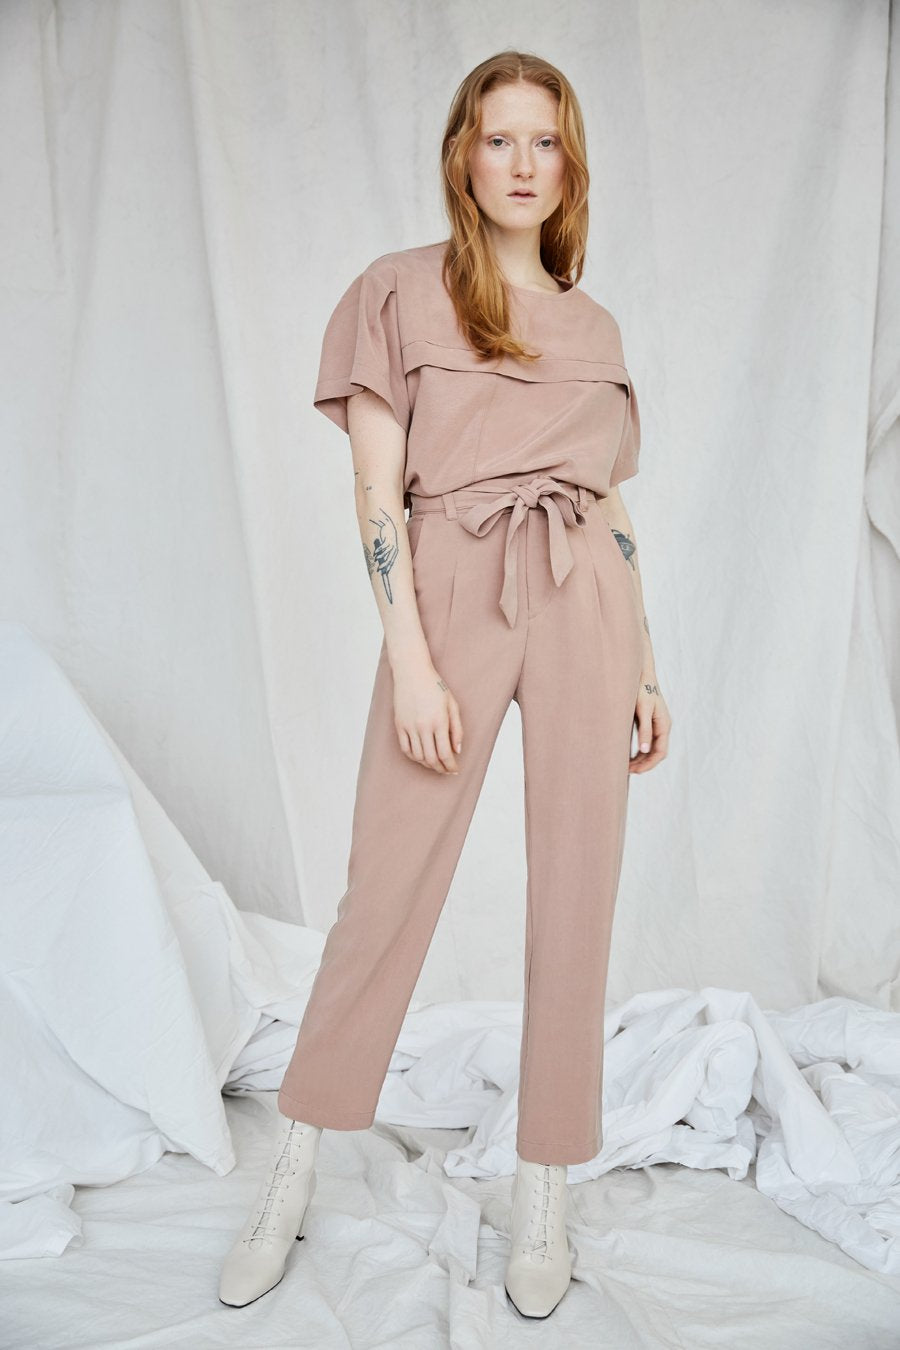 Eve Gravel Lion's Echo Pants (Dusty Pink)